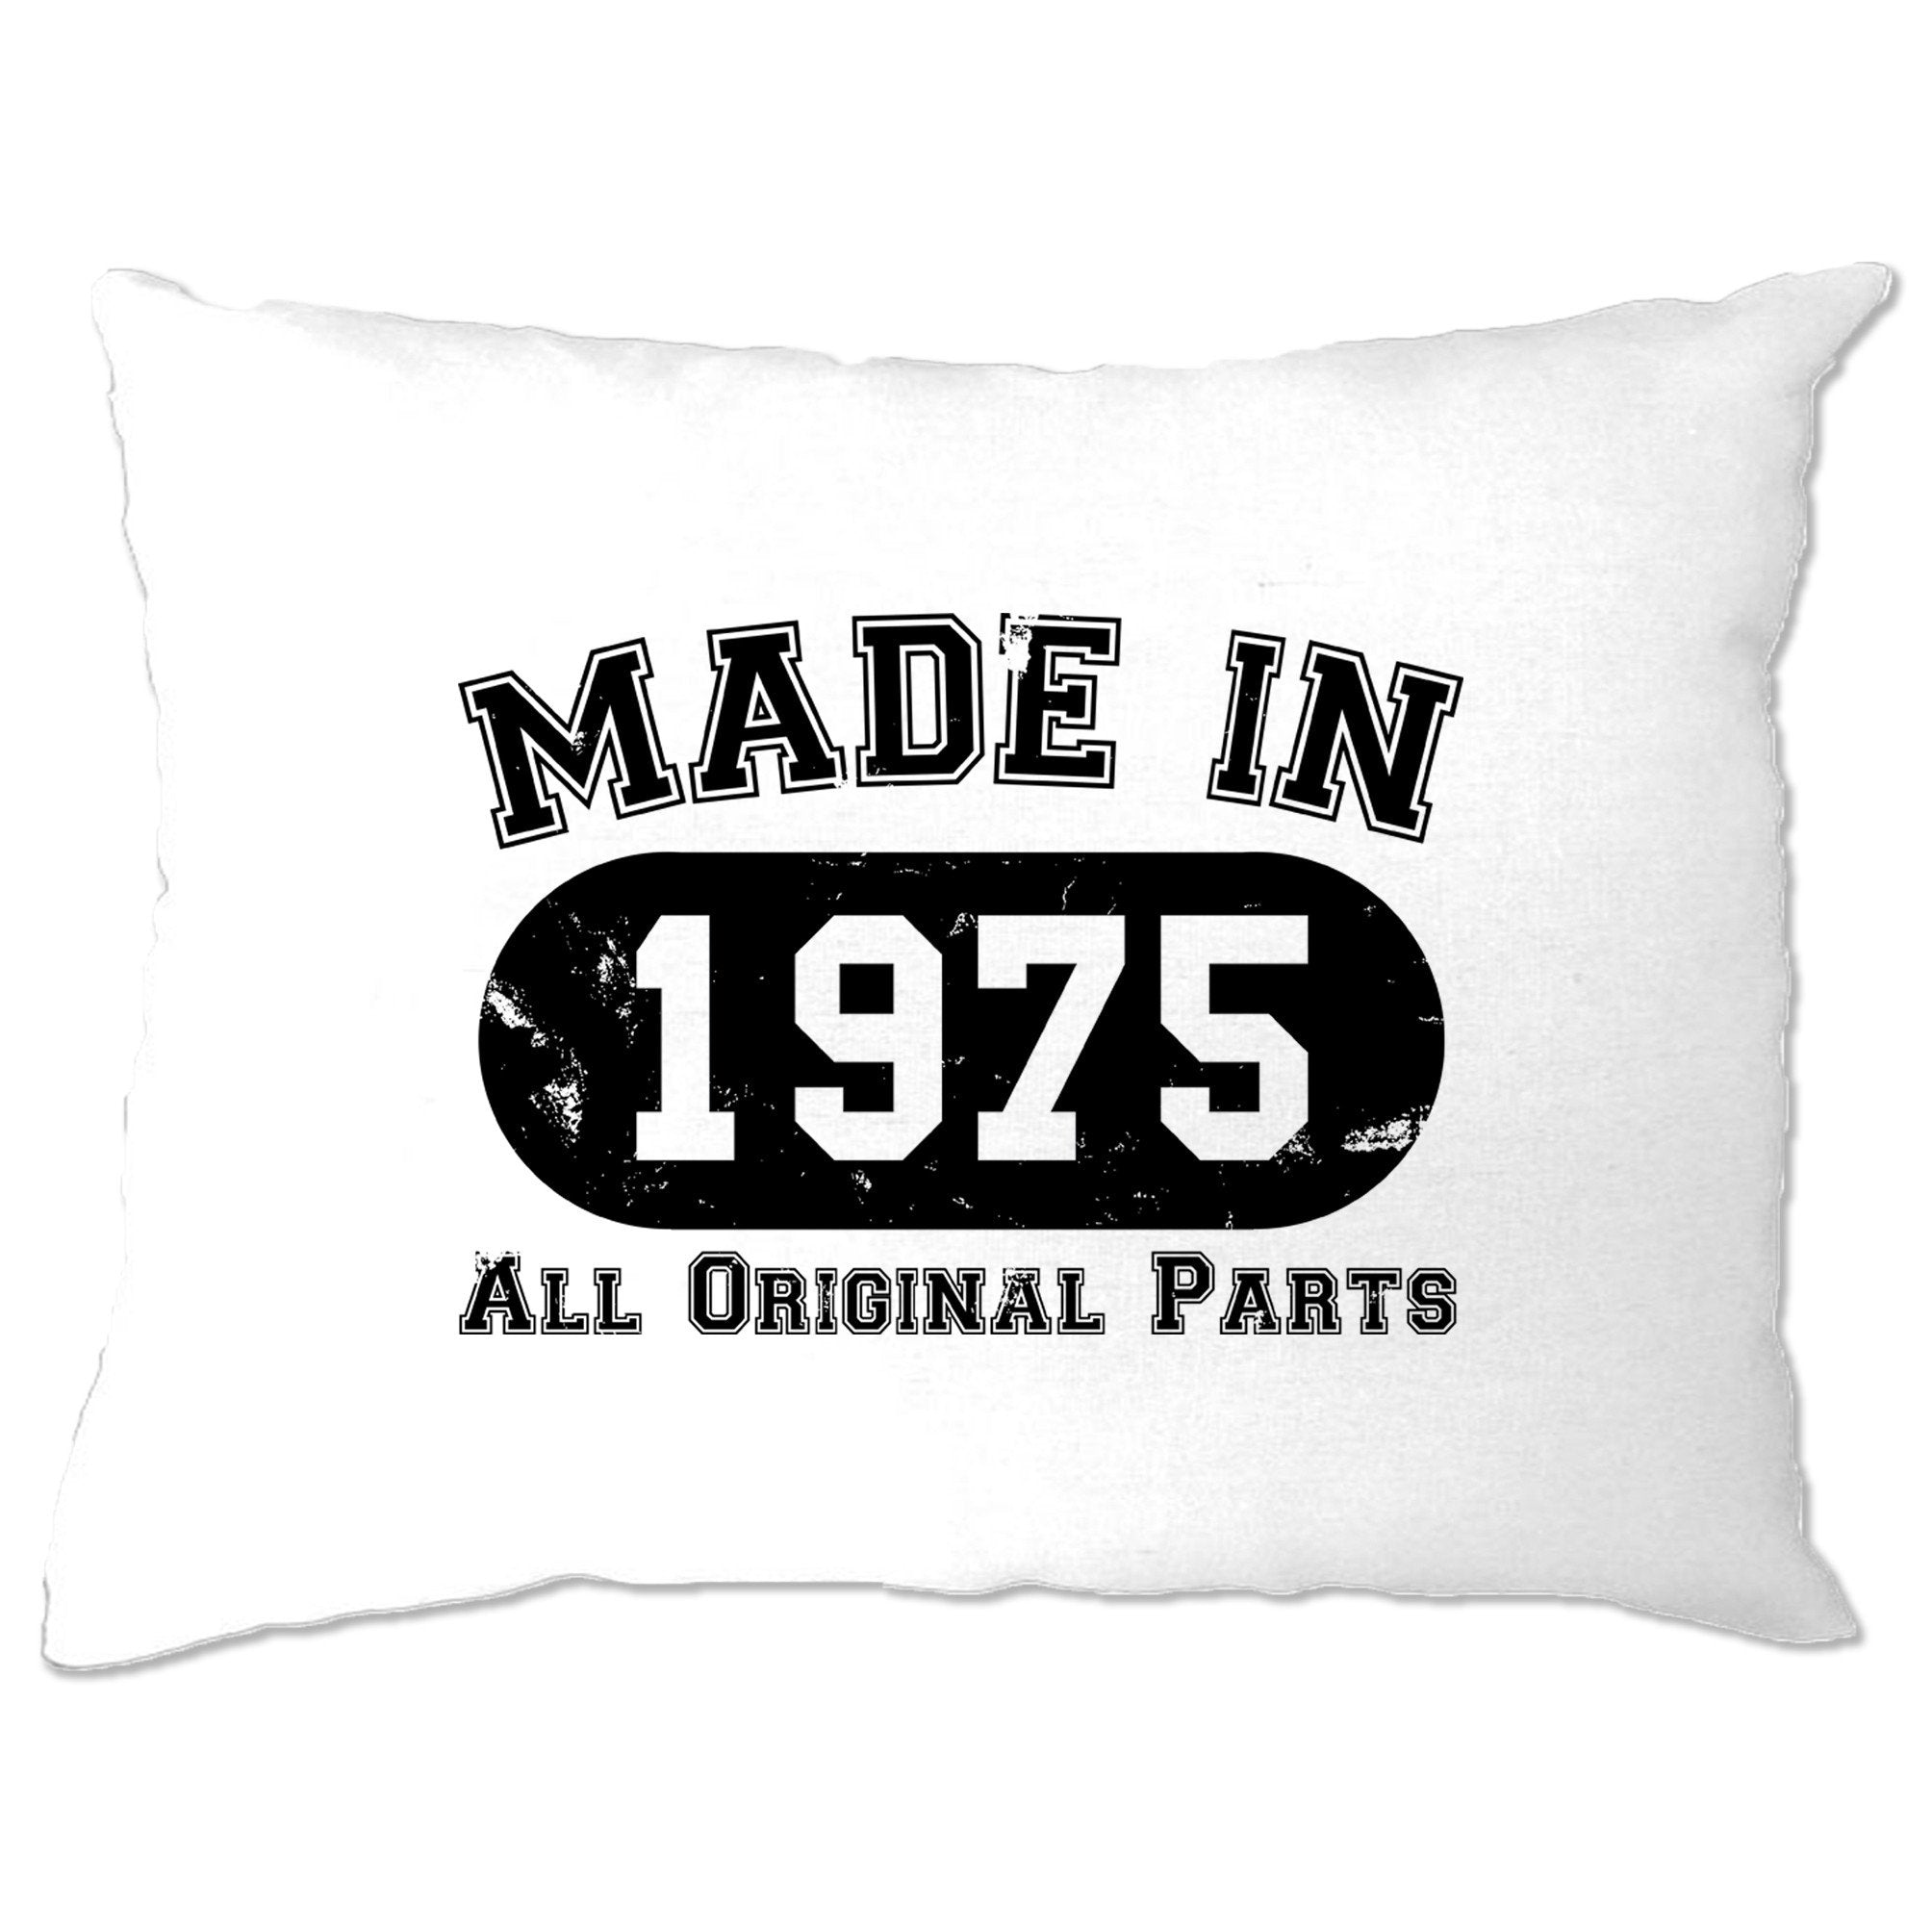 Made in 1975 All Original Parts Pillow Case [Distressed]